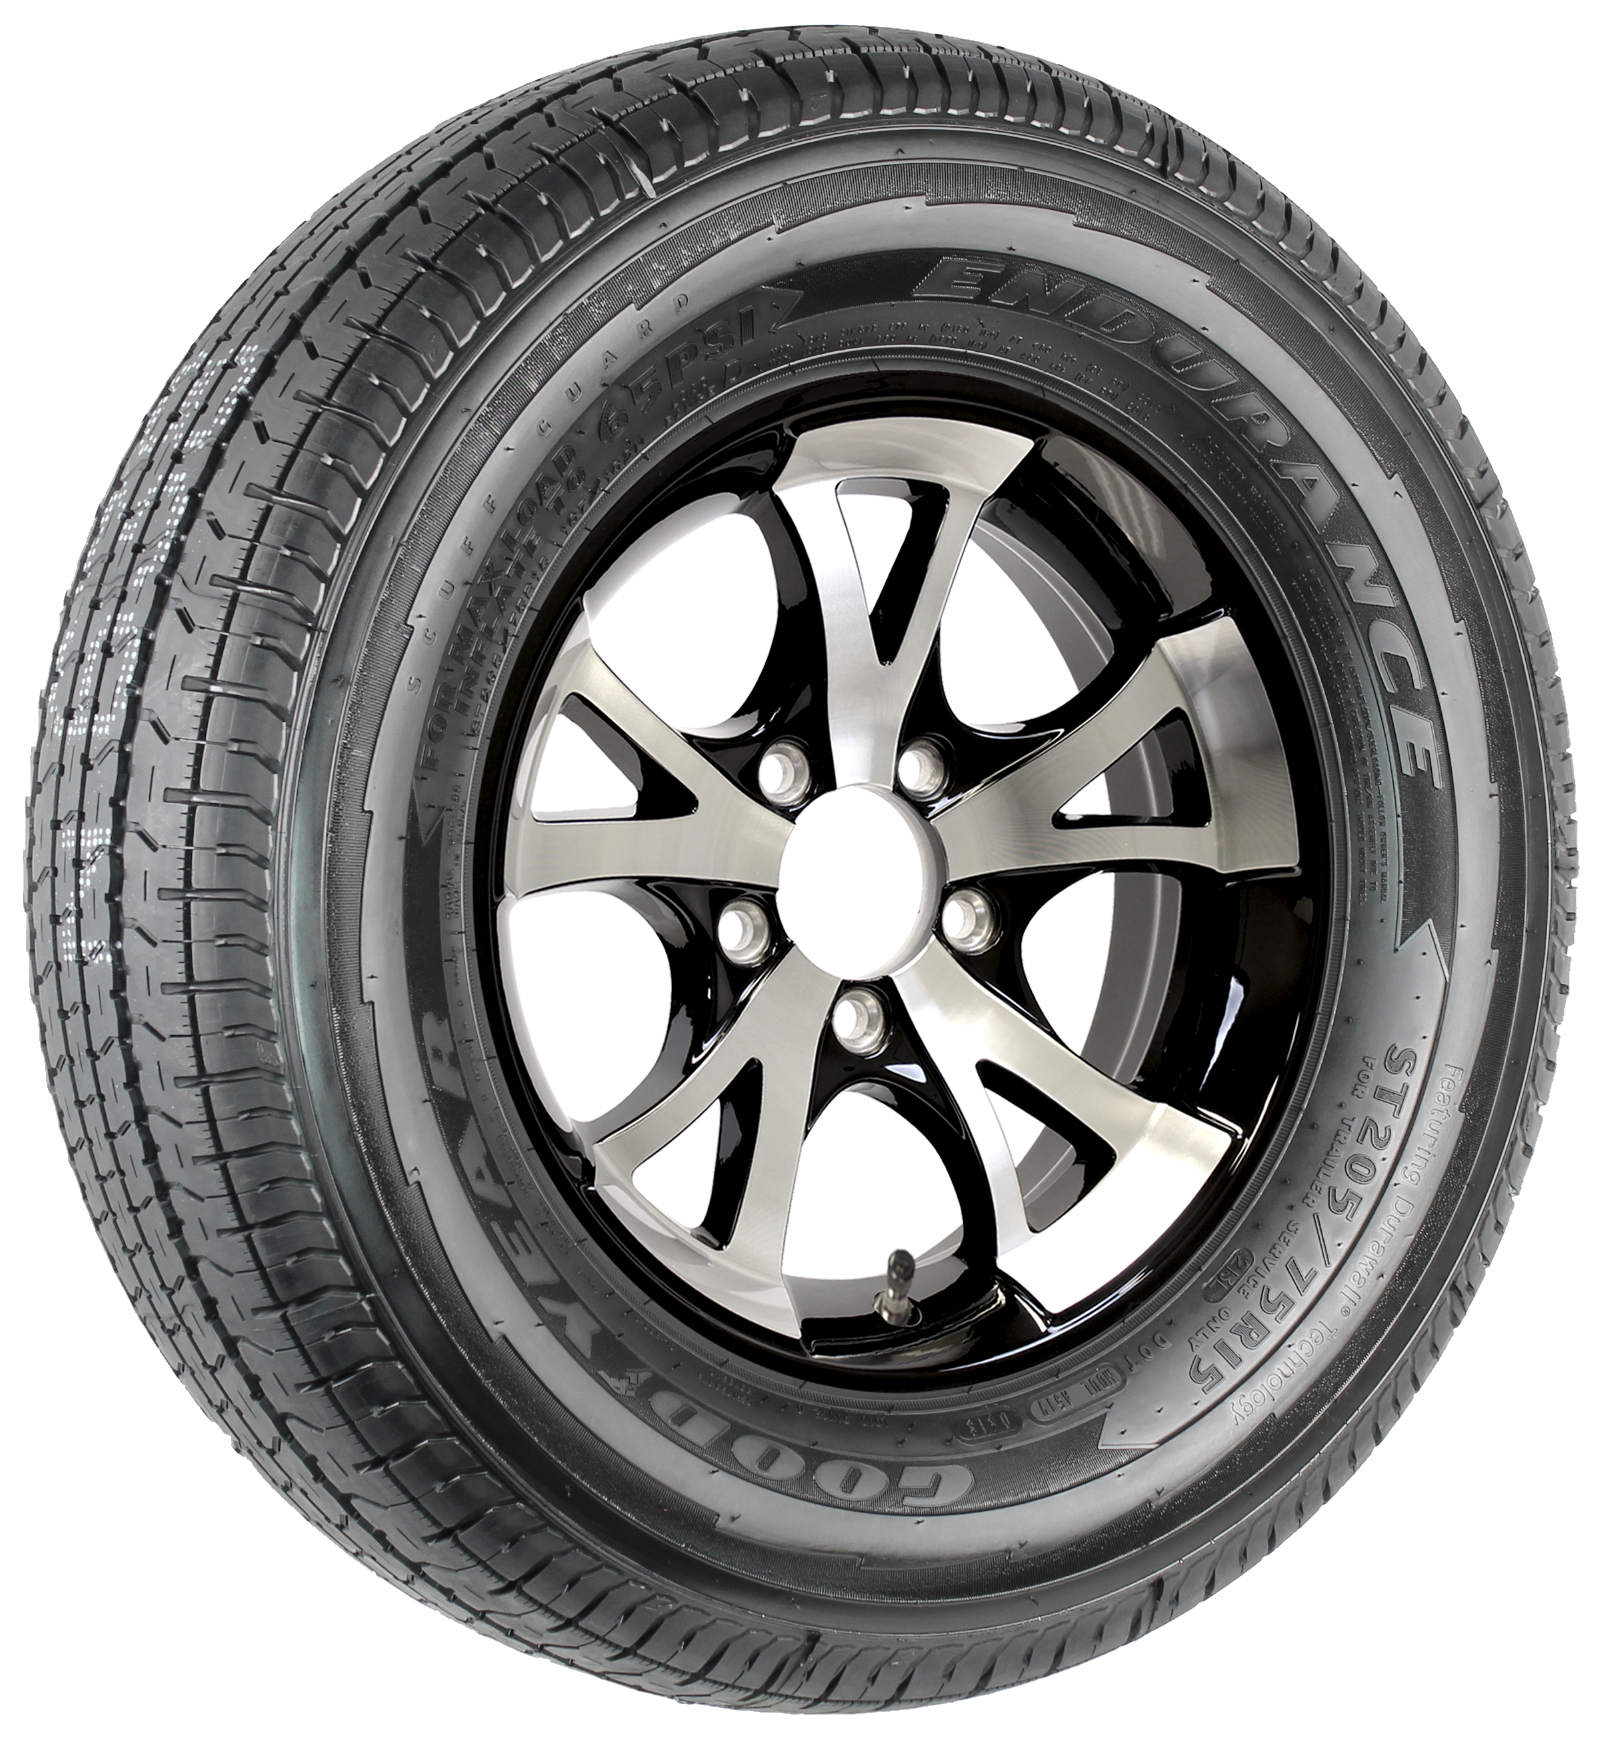 "Goodyear Endurance ST205/75R15 LRD Radial Tire on 15"" 5-Lug A1411 Black Aluminum Assembly Image"